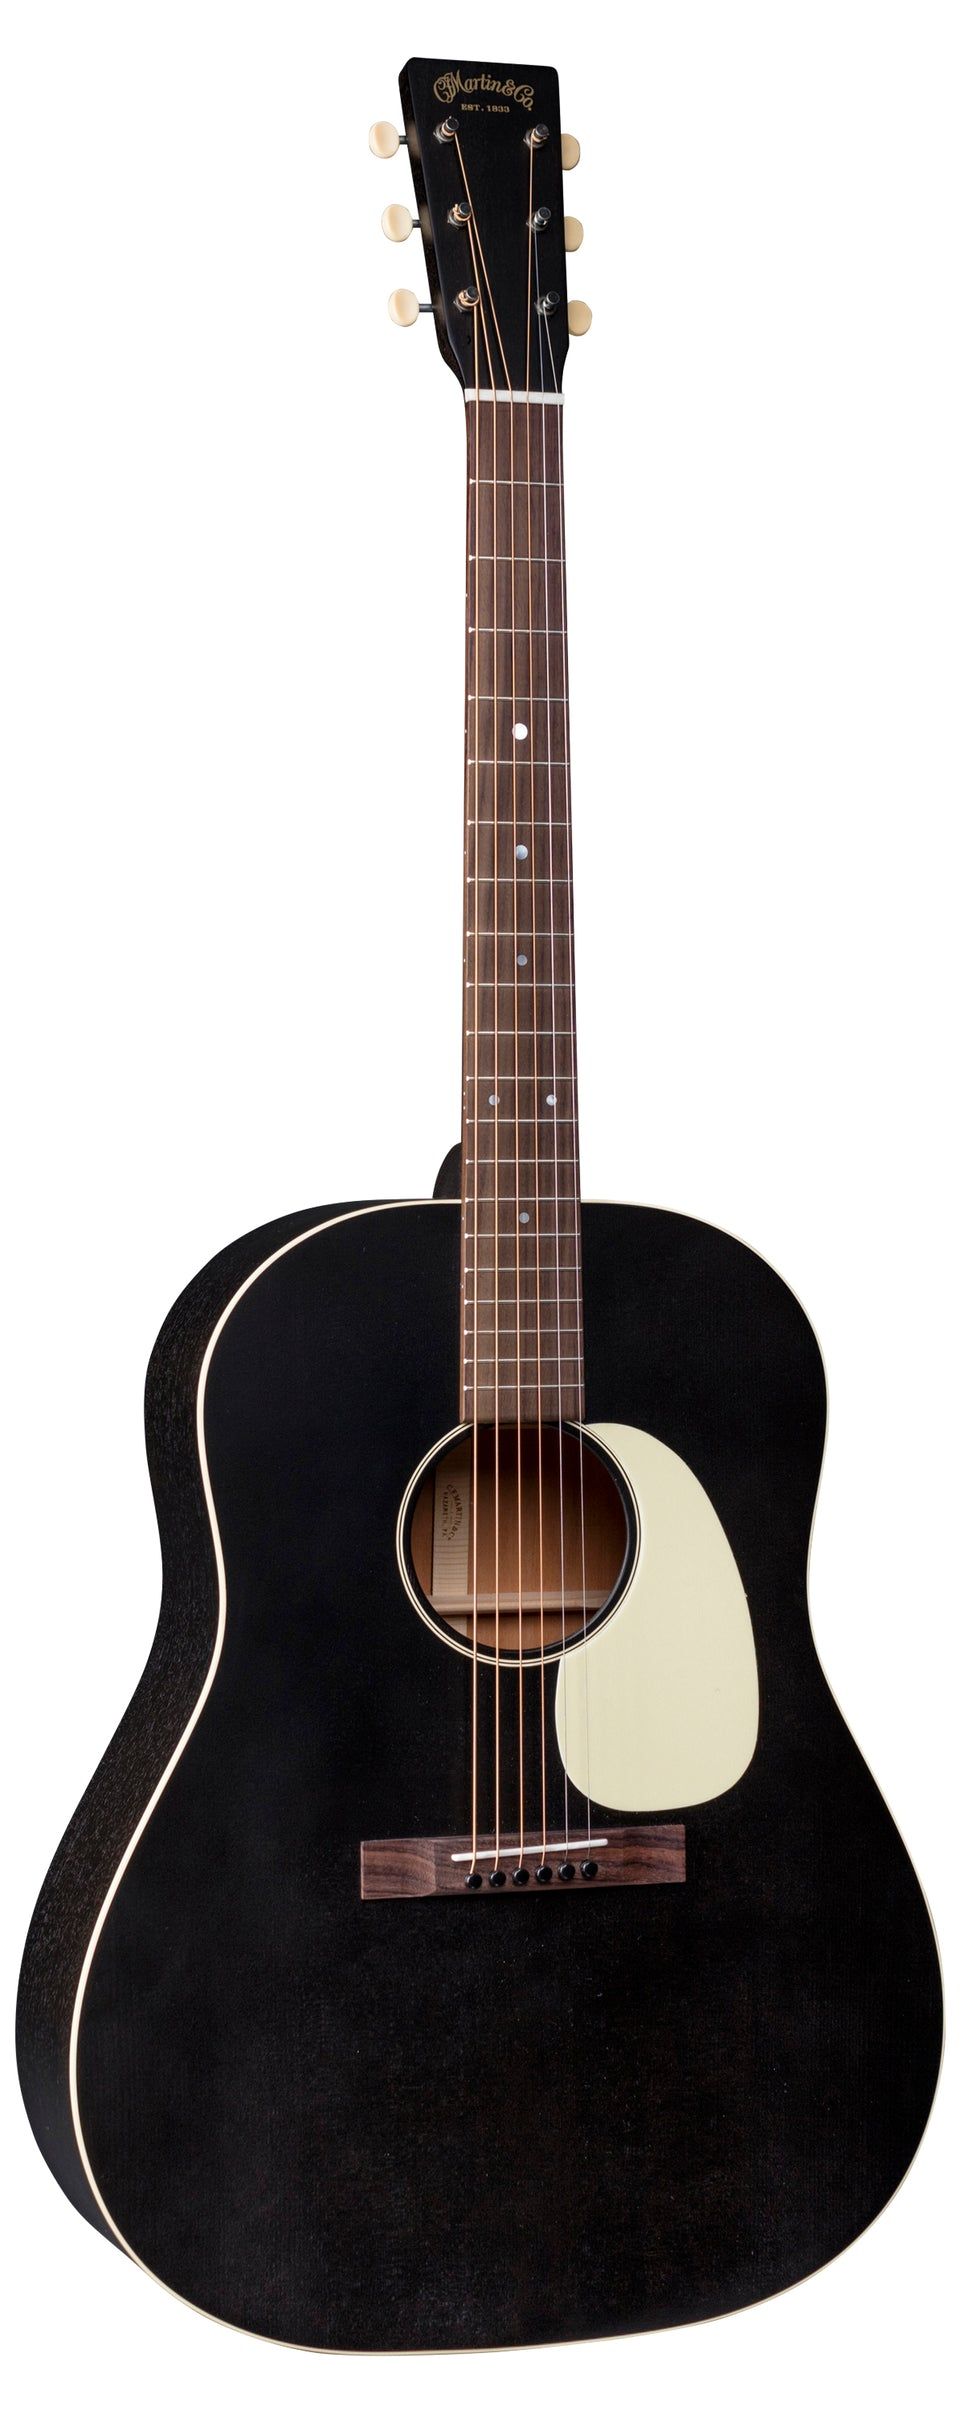 Martin DSS-17 Acoustic Guitar - Black Smoke